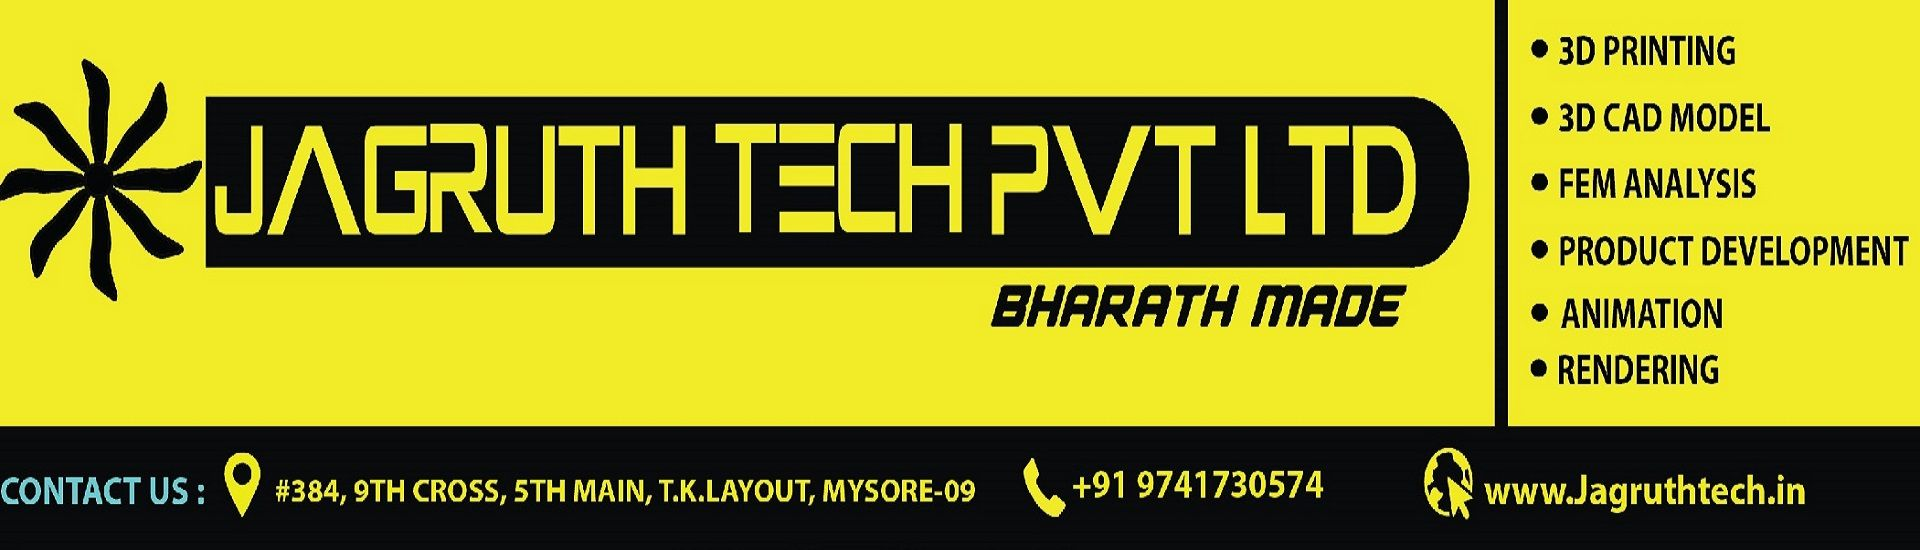 Jagruth Tech Pvt Ltd